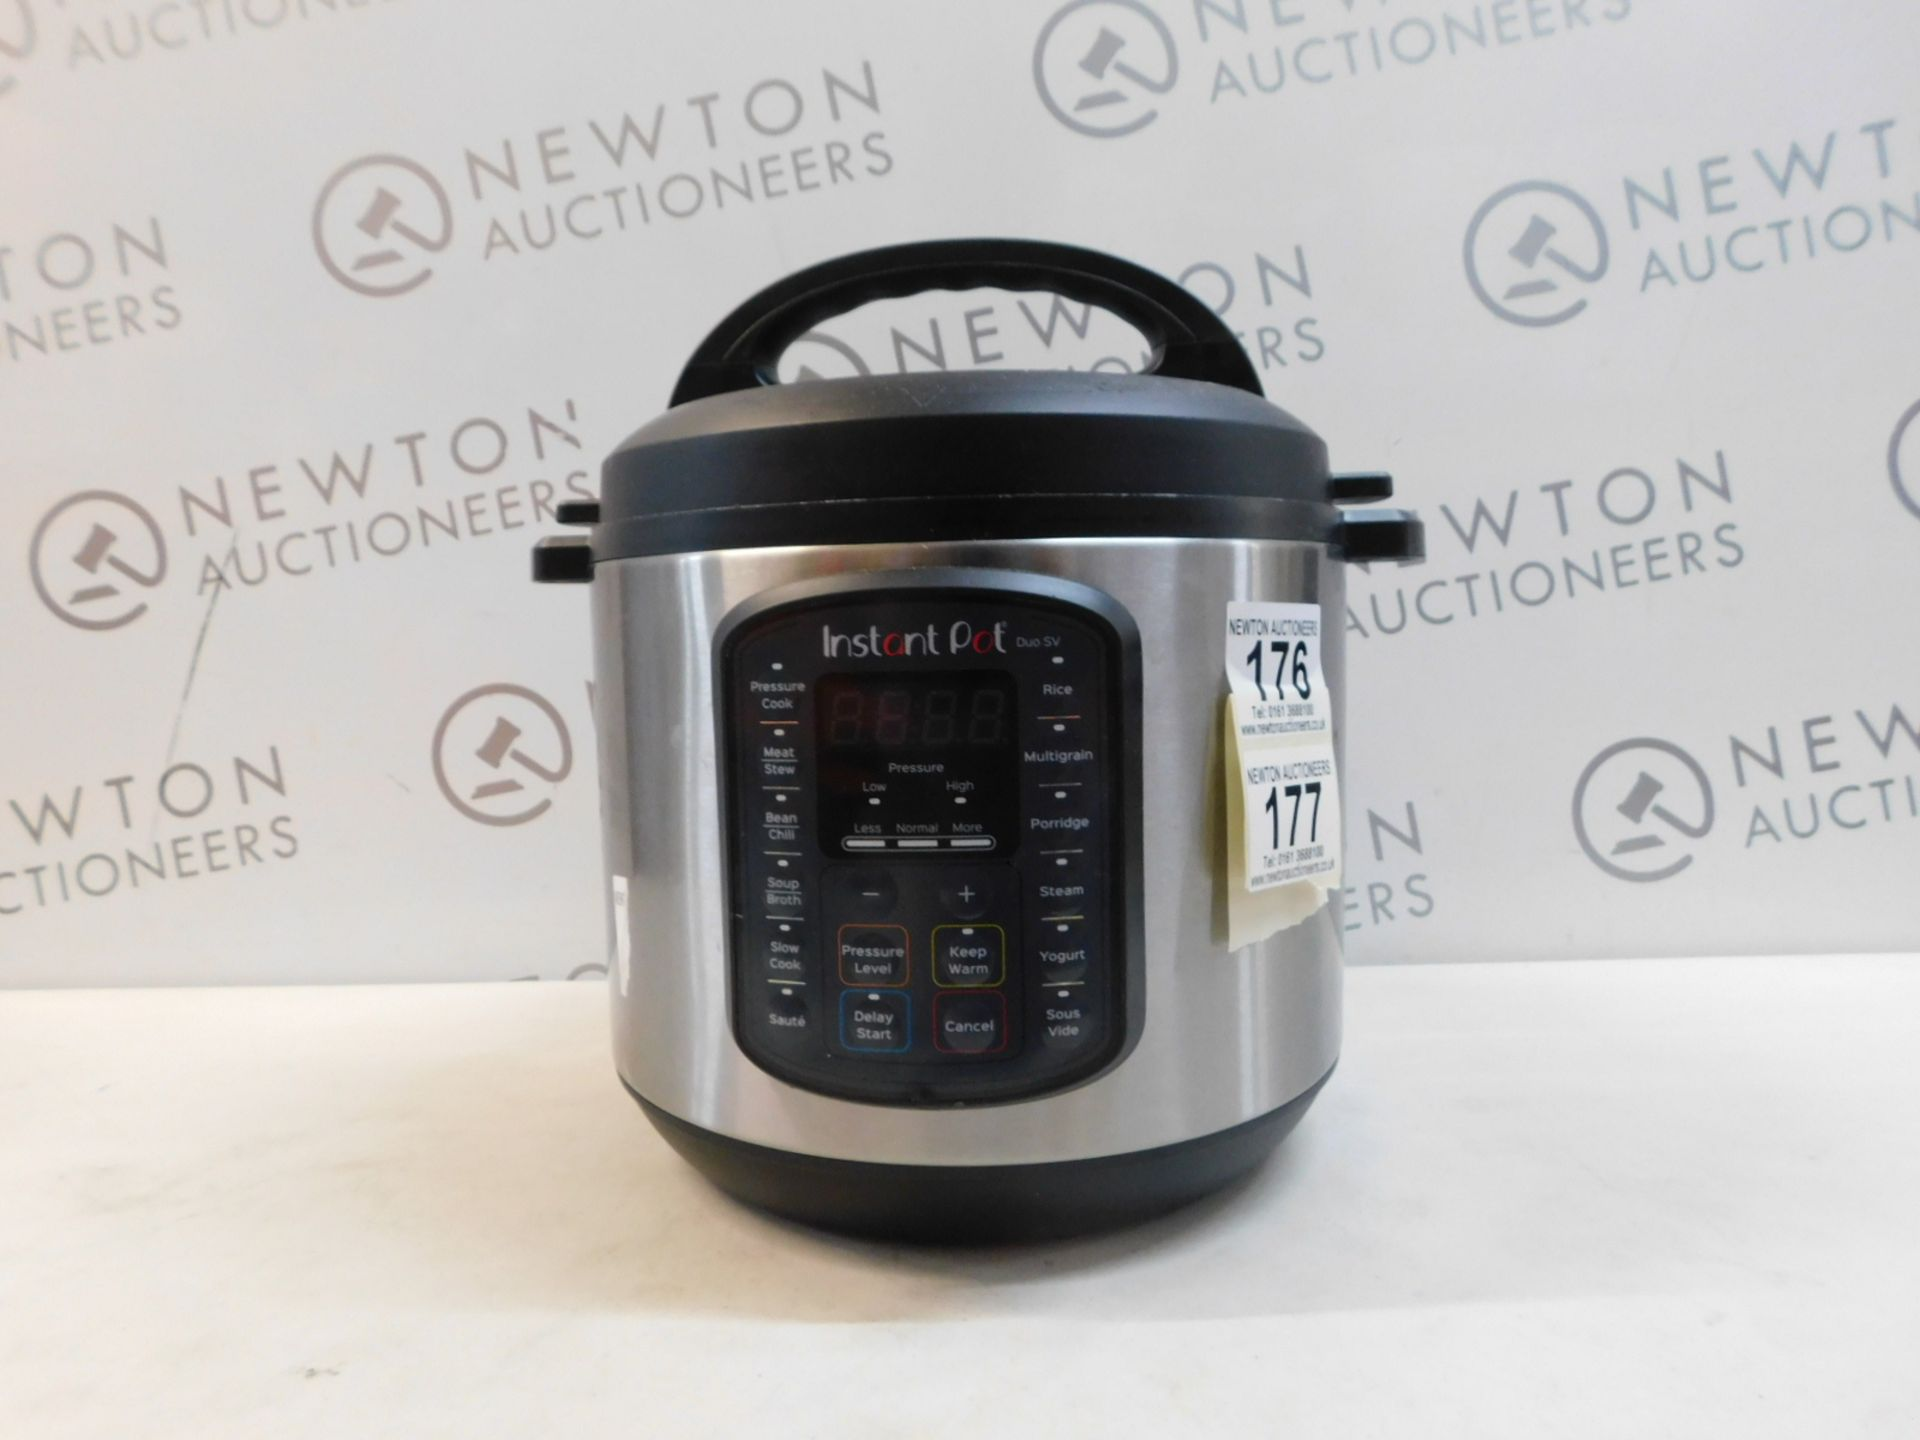 1 INSTANT POT DUO SV 9 IN 1 ELECTRIC PRESSURE COOKER 5.7L RRP £115